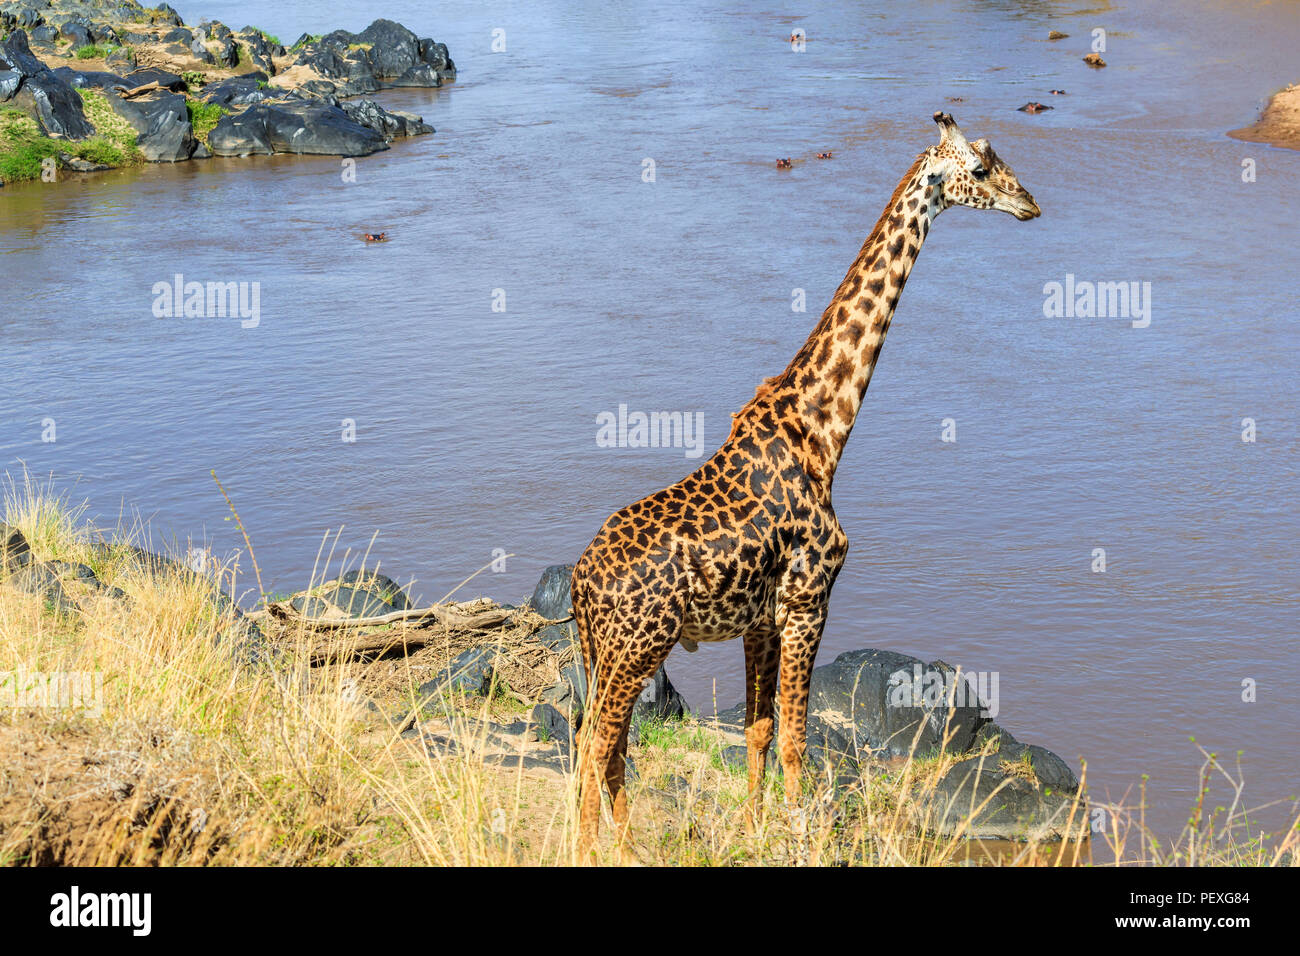 Tall male Masai giraffe (Giraffa camelopardalis tippelskirchi) uses his long neck to look out over the Mara River from the riverbank, Masai Mara Kenya - Stock Image